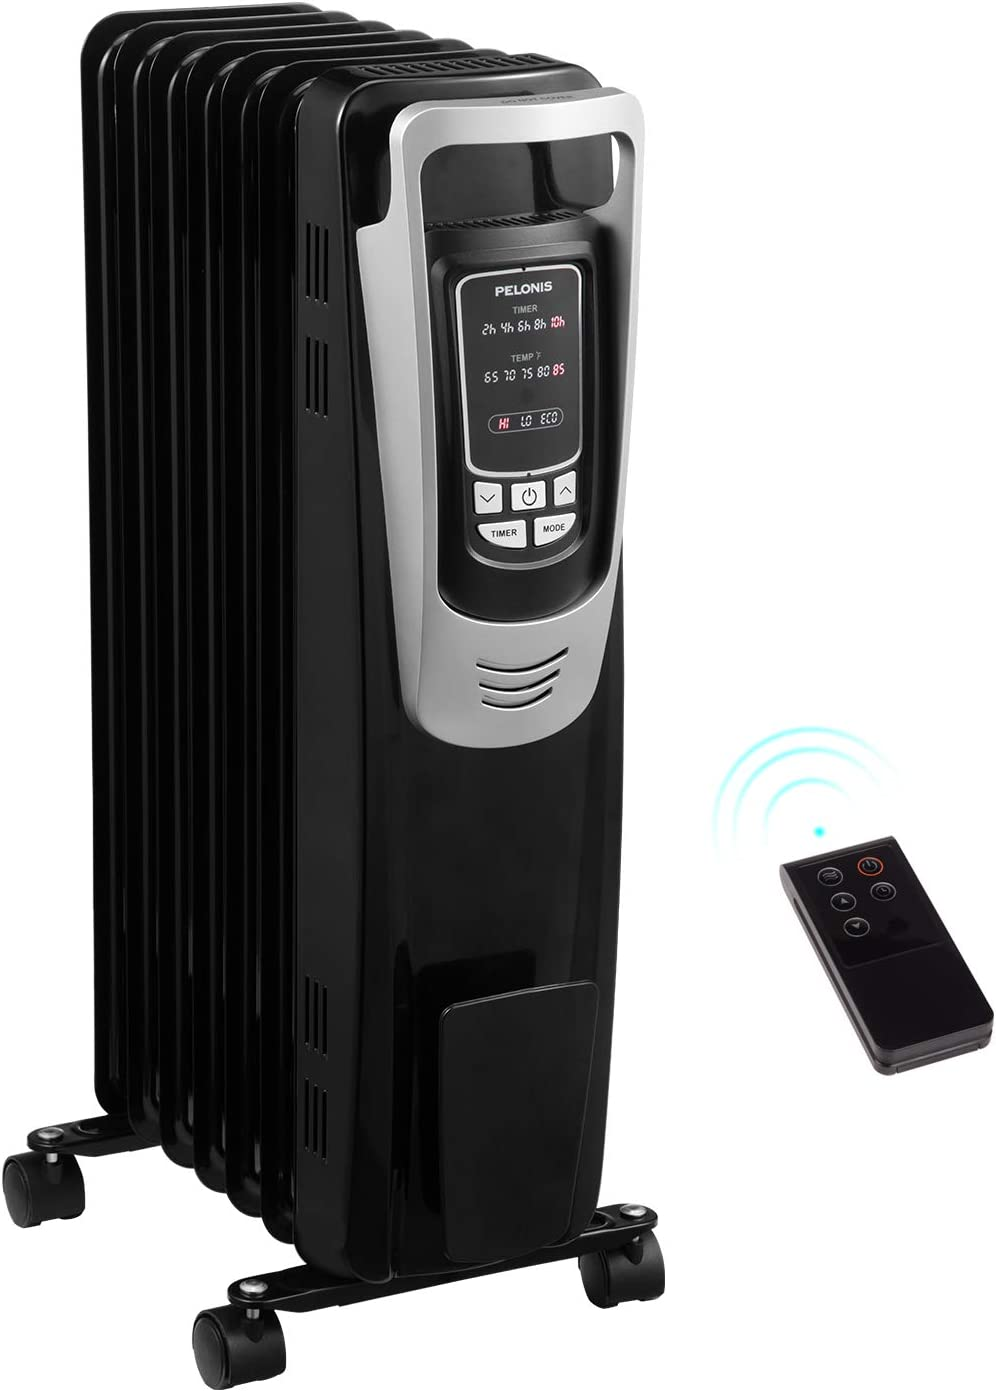 Top 6 Best Oil Filled Heater To Keep You Stay Warm (2019 Reviews) 5